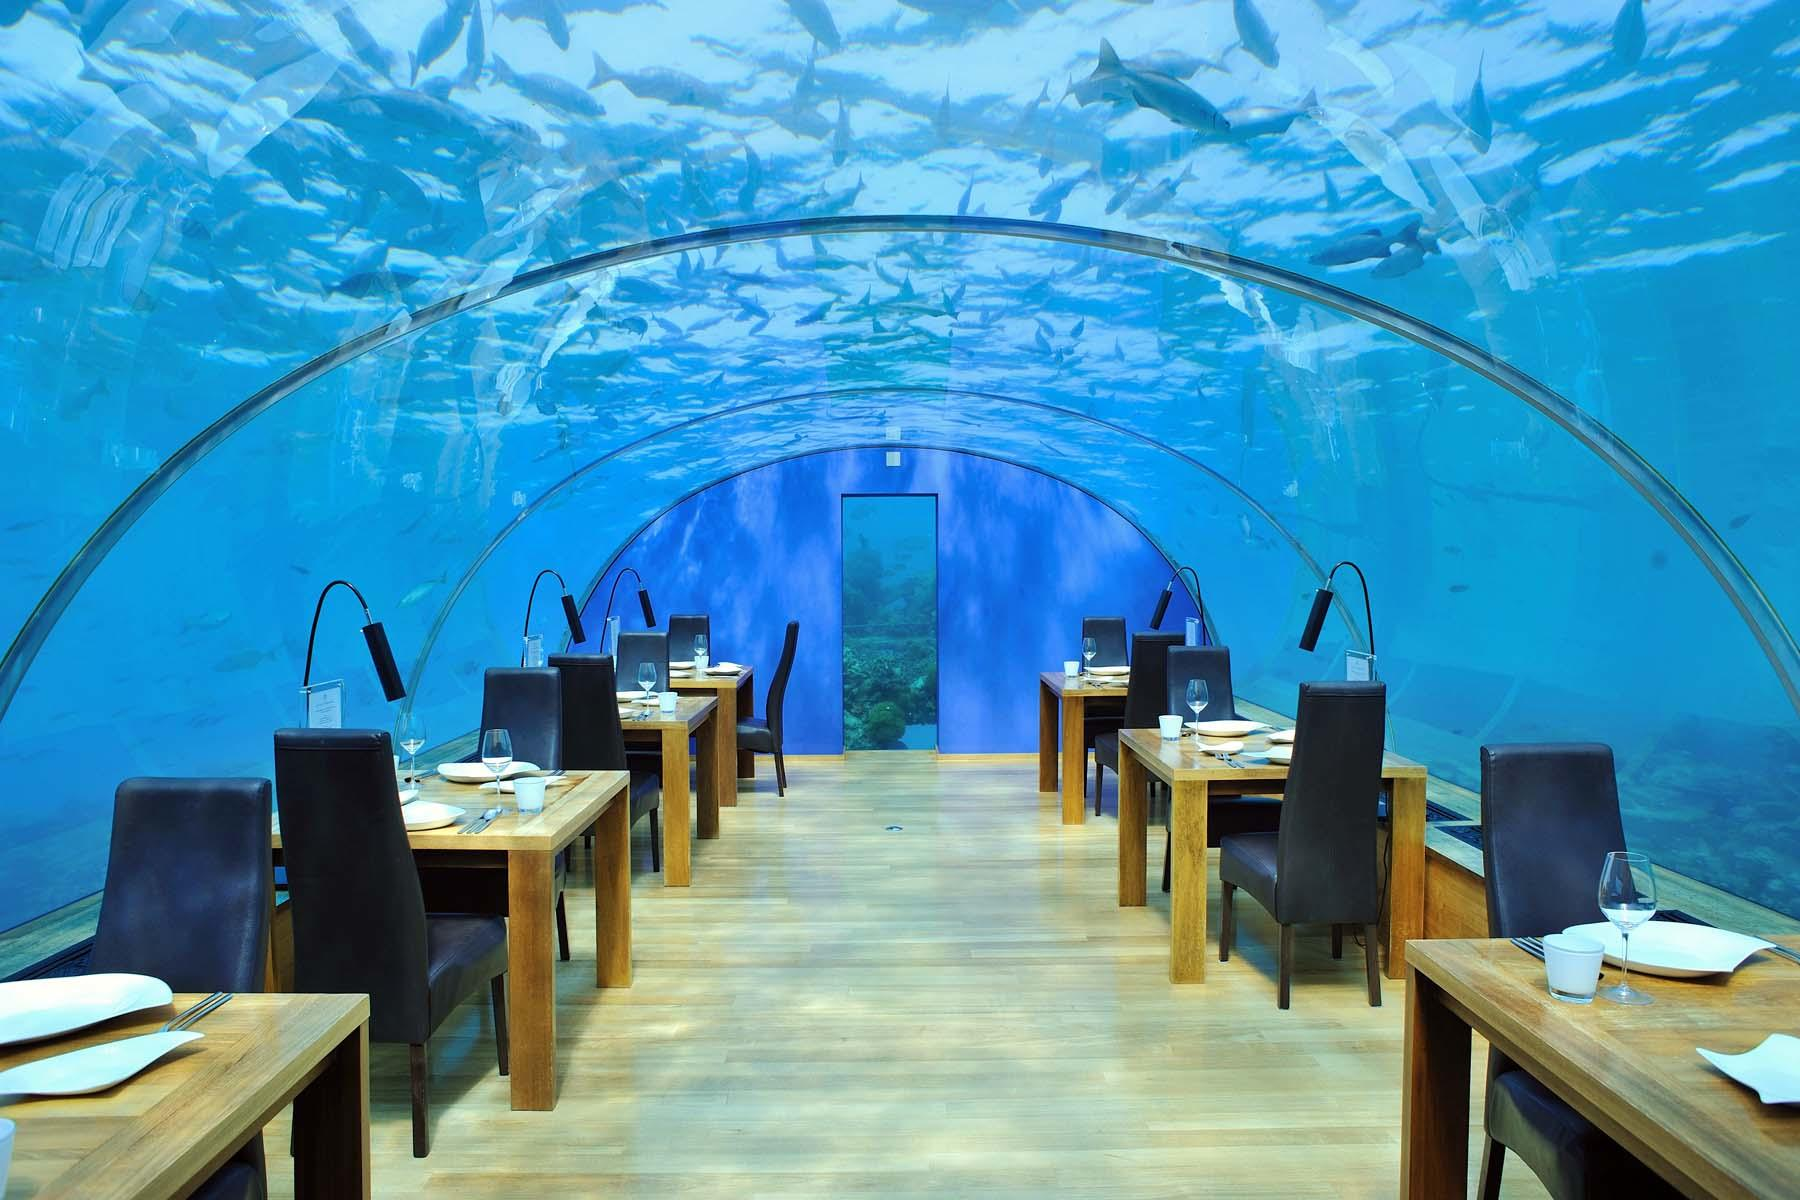 The Weirdest Hotels You Can Stay In